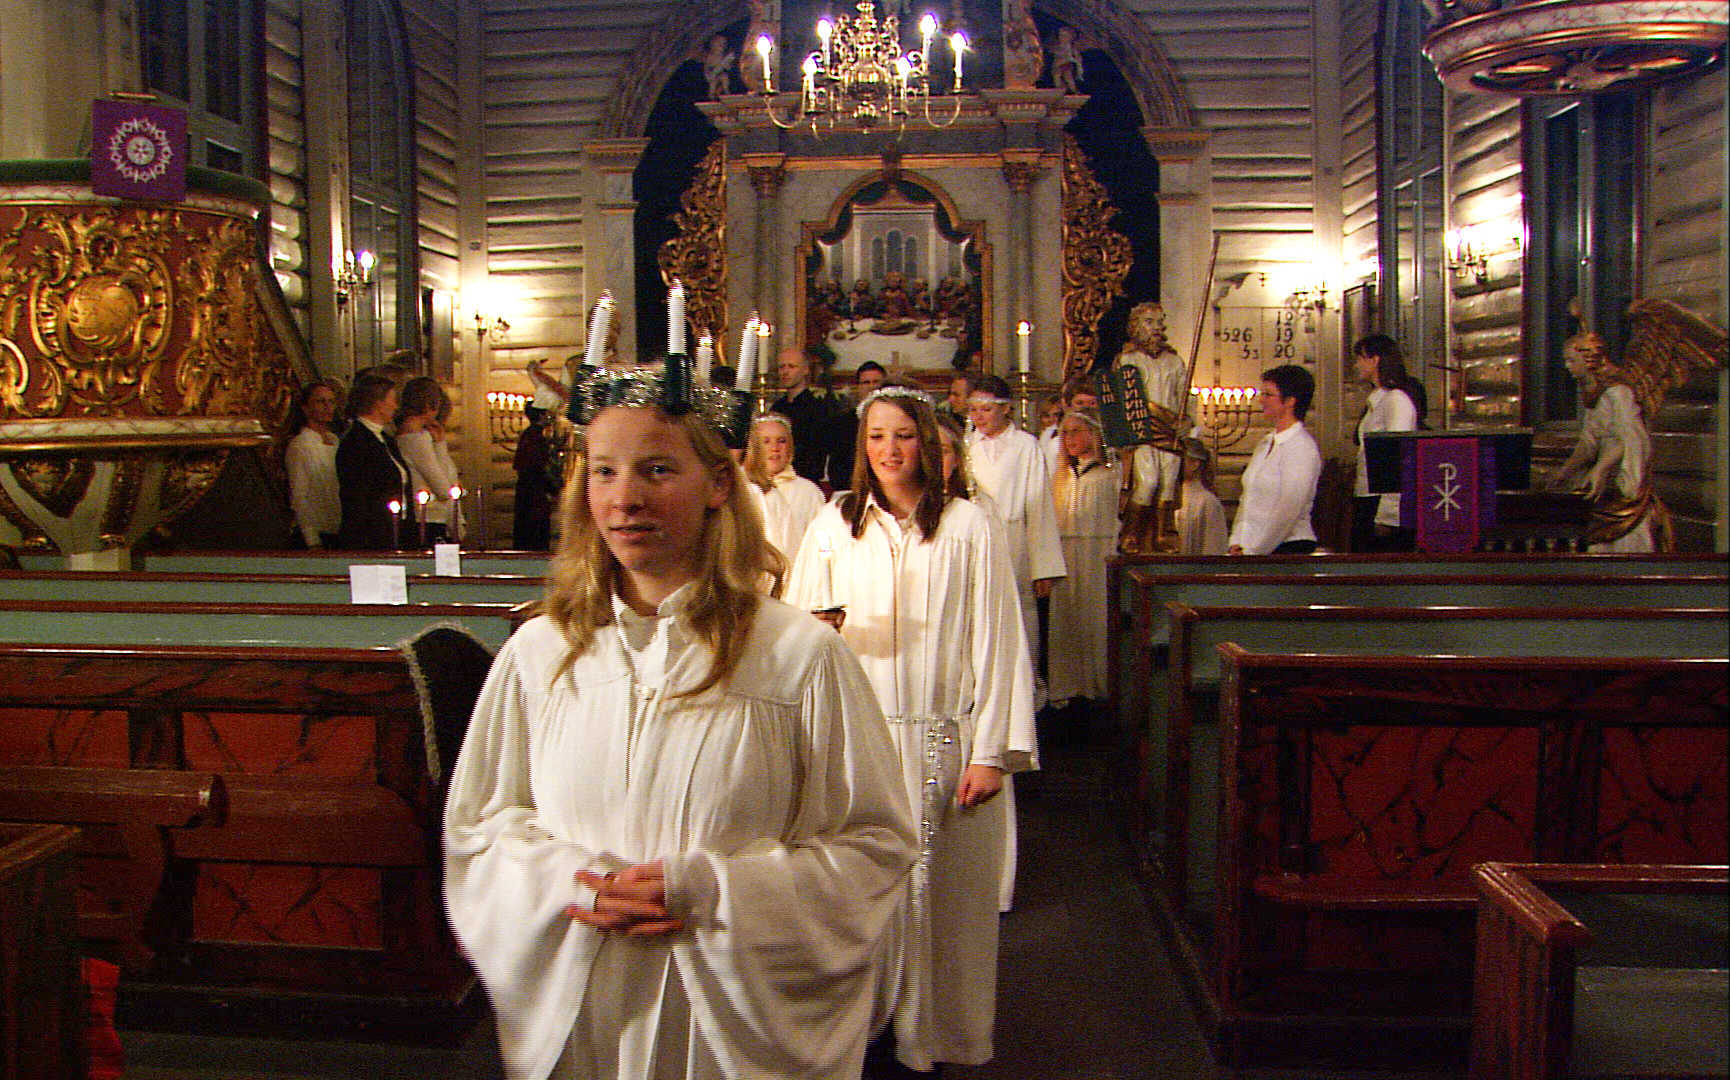 Choir Girls in Church, Santa Lucia, Christmas, Norway